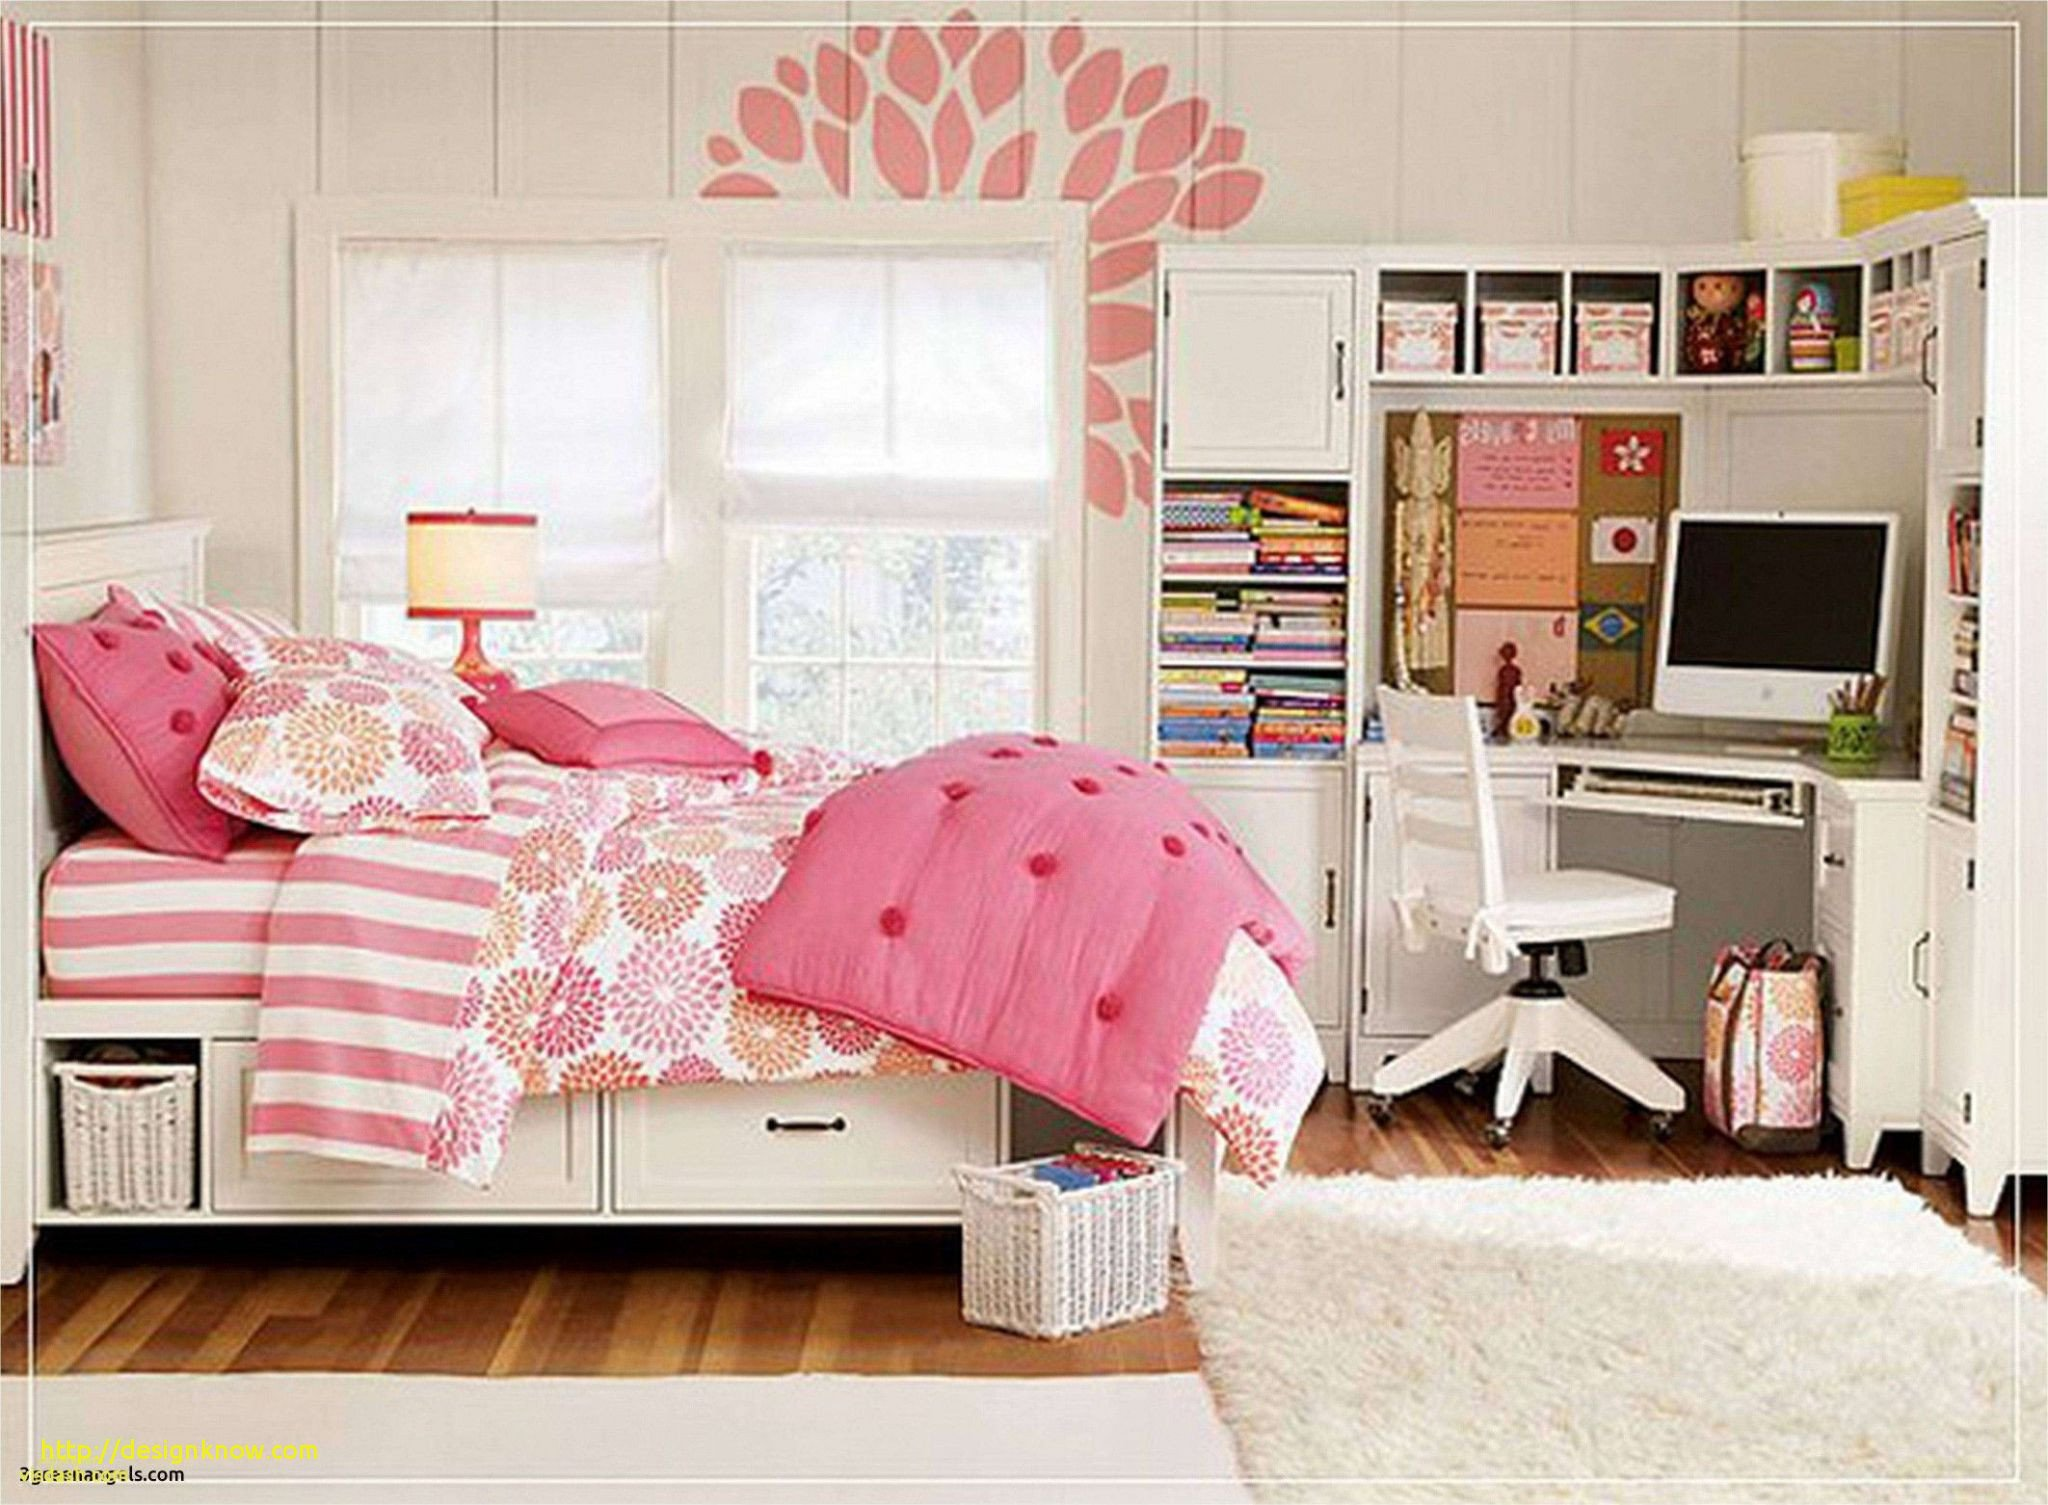 Full Size Bedroom Furniture Set Fresh Unique Interior Design for Small Size Bedroom